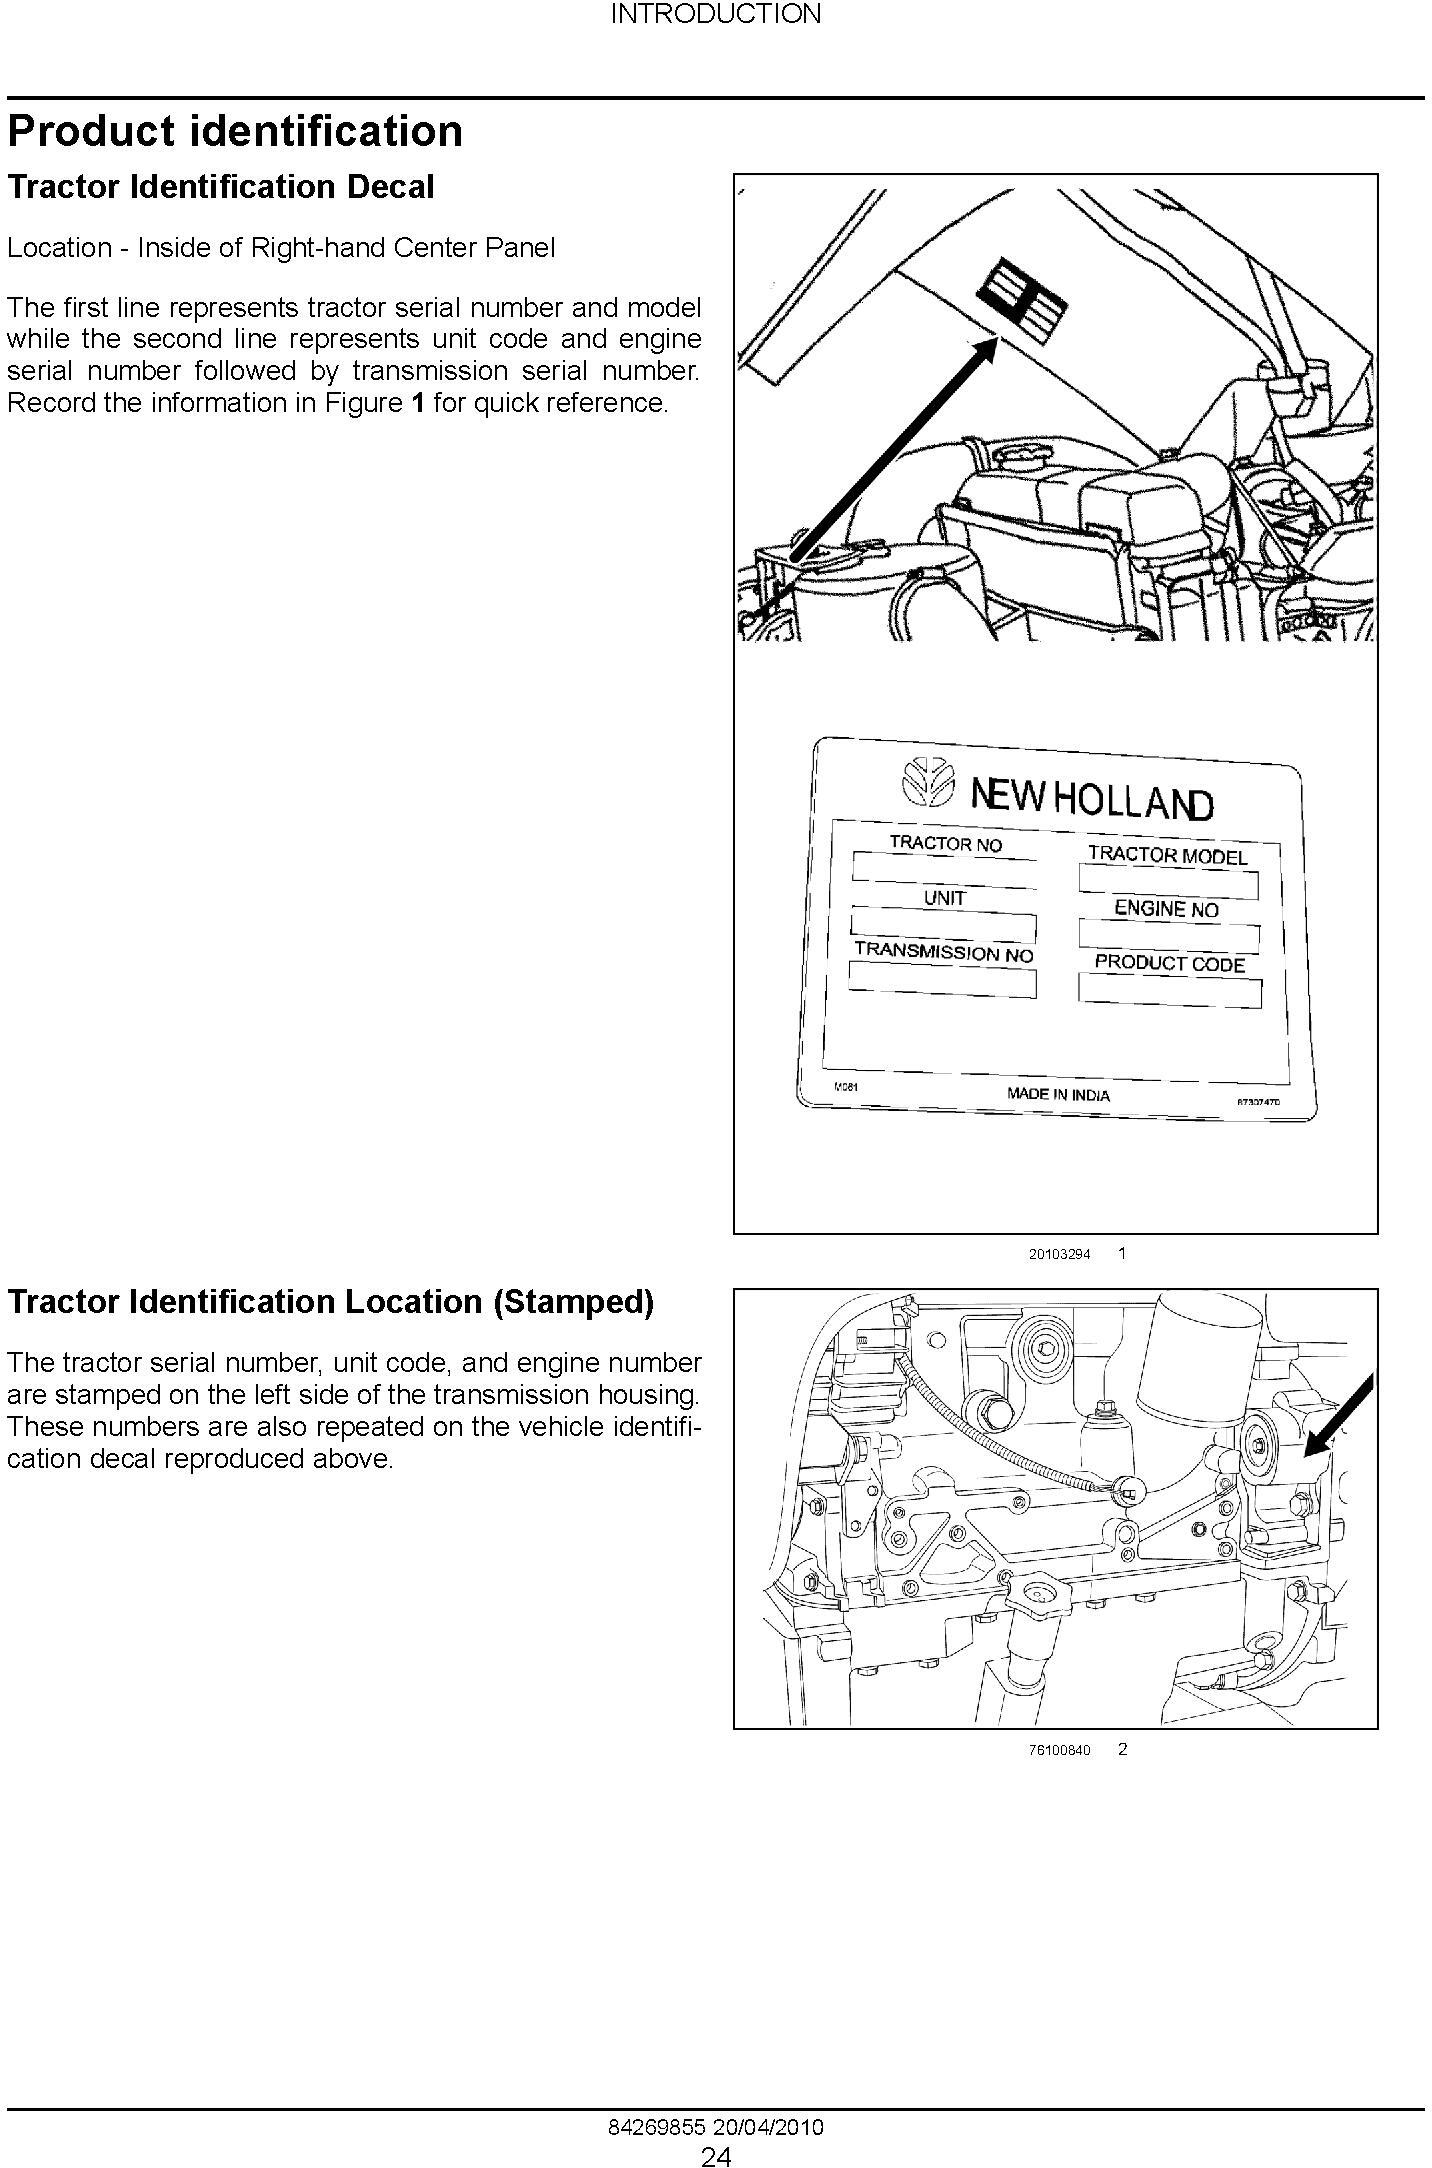 New Holland Workmaster 75, Workmaster 65 Tractor Complete Service Manual - 1